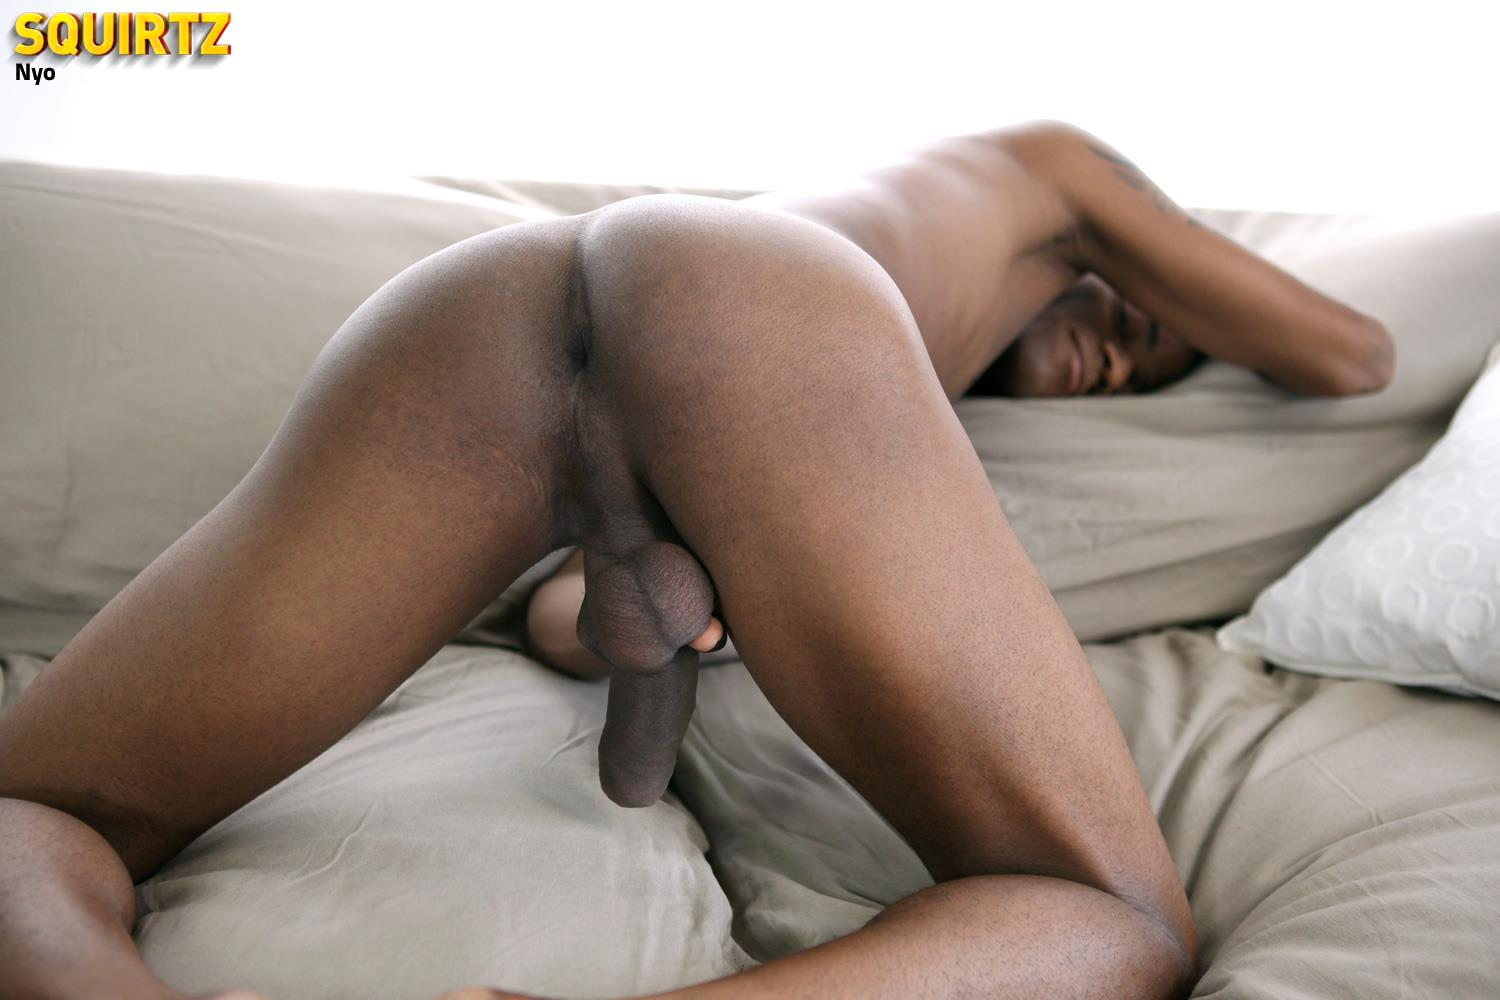 Squirtz Nyo Big Uncut Black Cock Jerking Off Cum Shot Amateur Gay Porn 18 Young Black Guy Jerking His Massive Uncut Black Cock